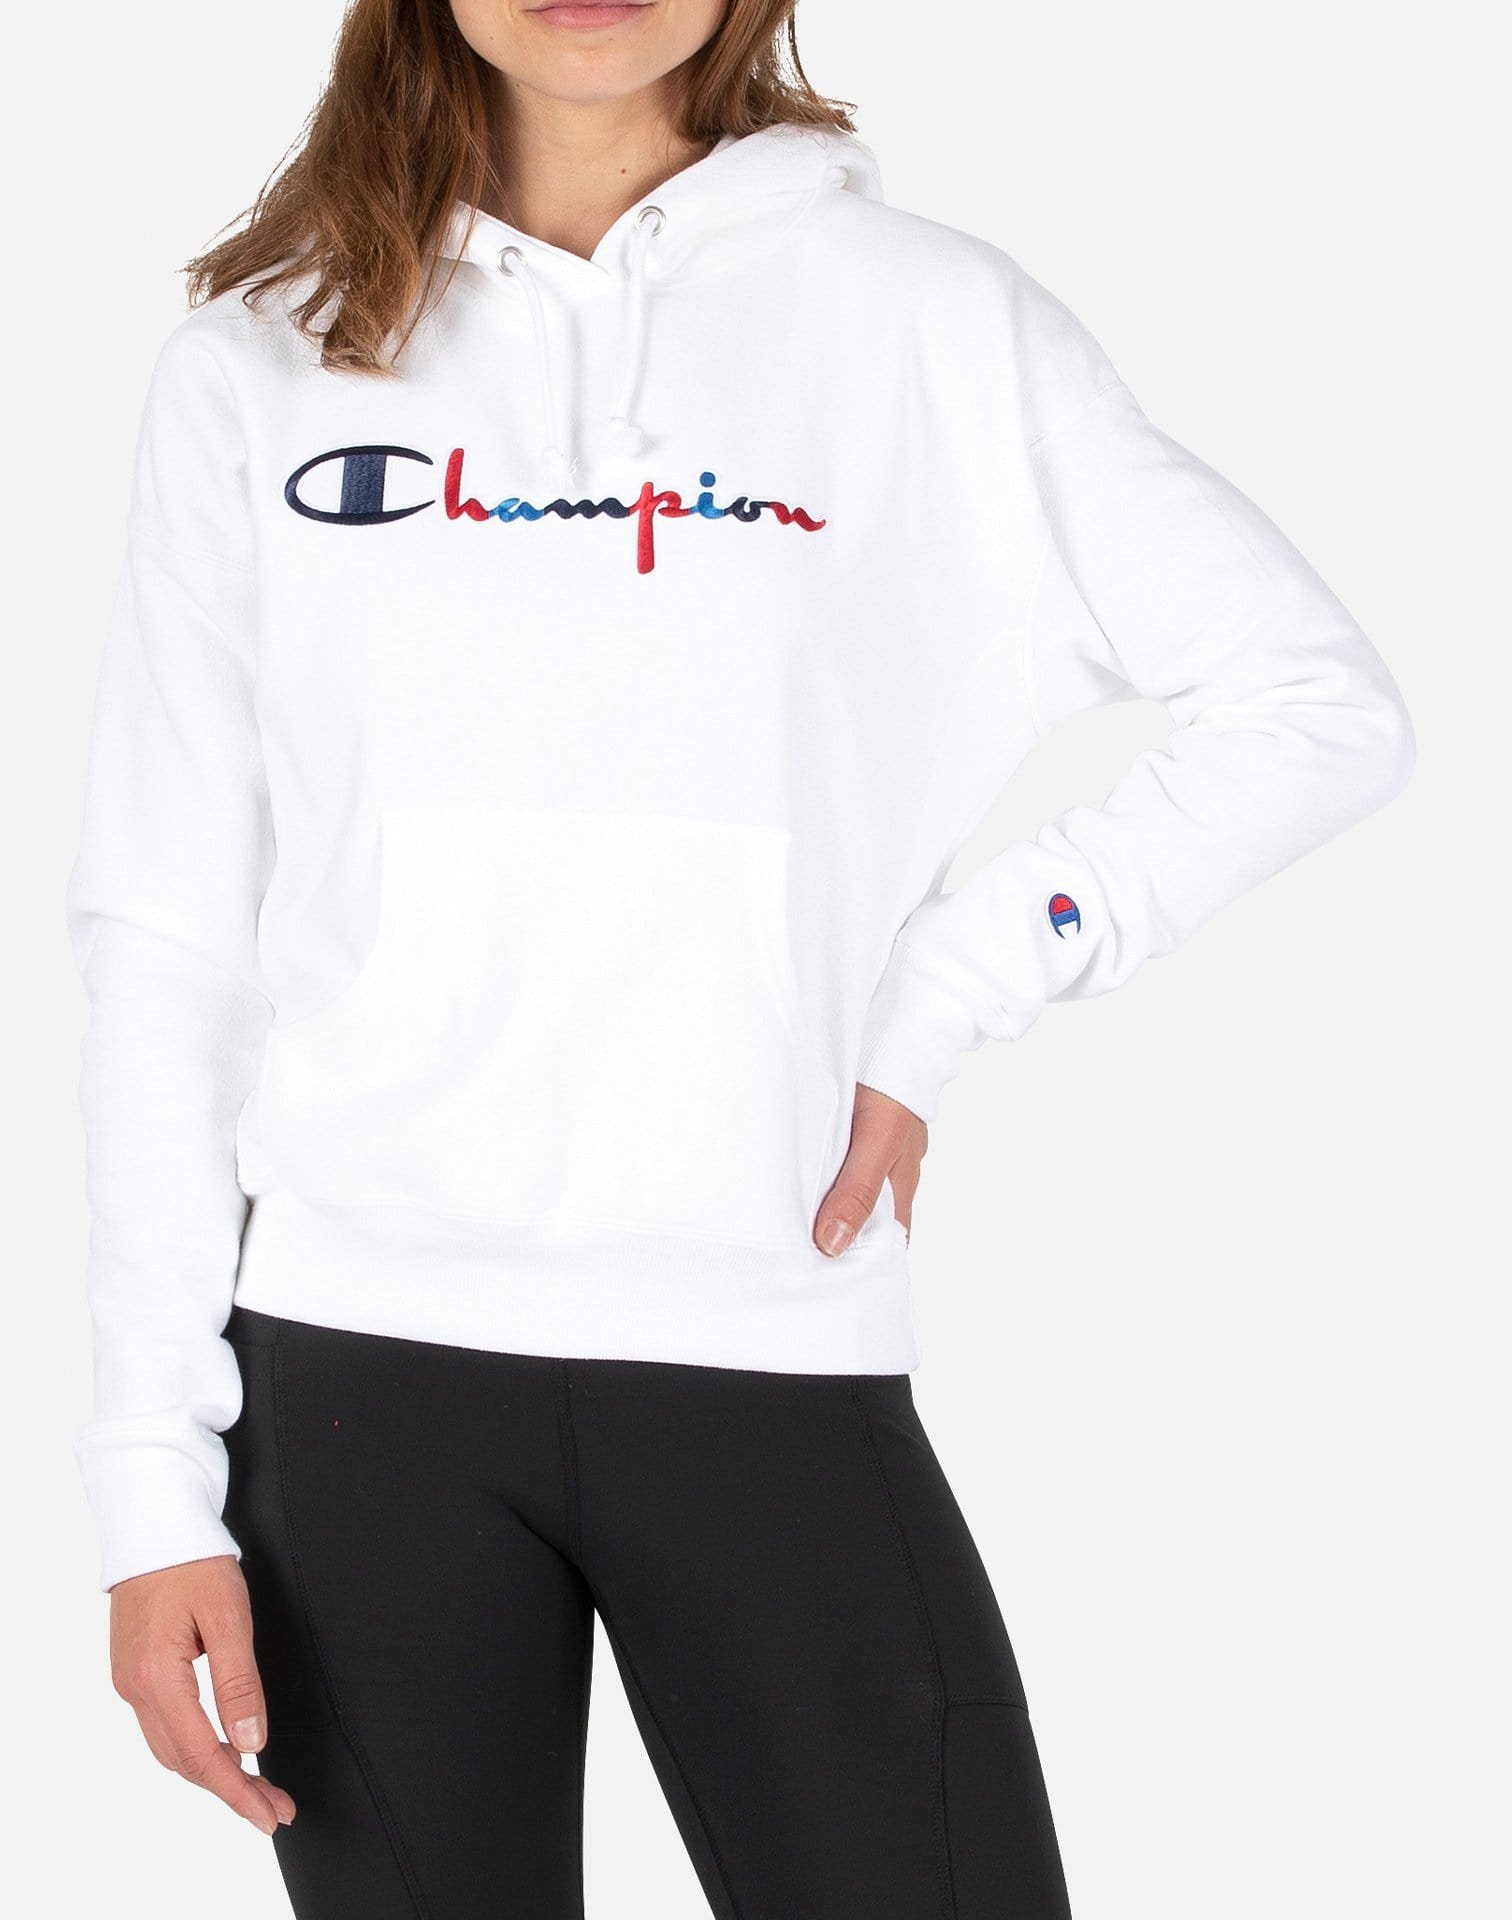 Champion Women's Vintage Logo Reverse Weave Pullover Hoodie